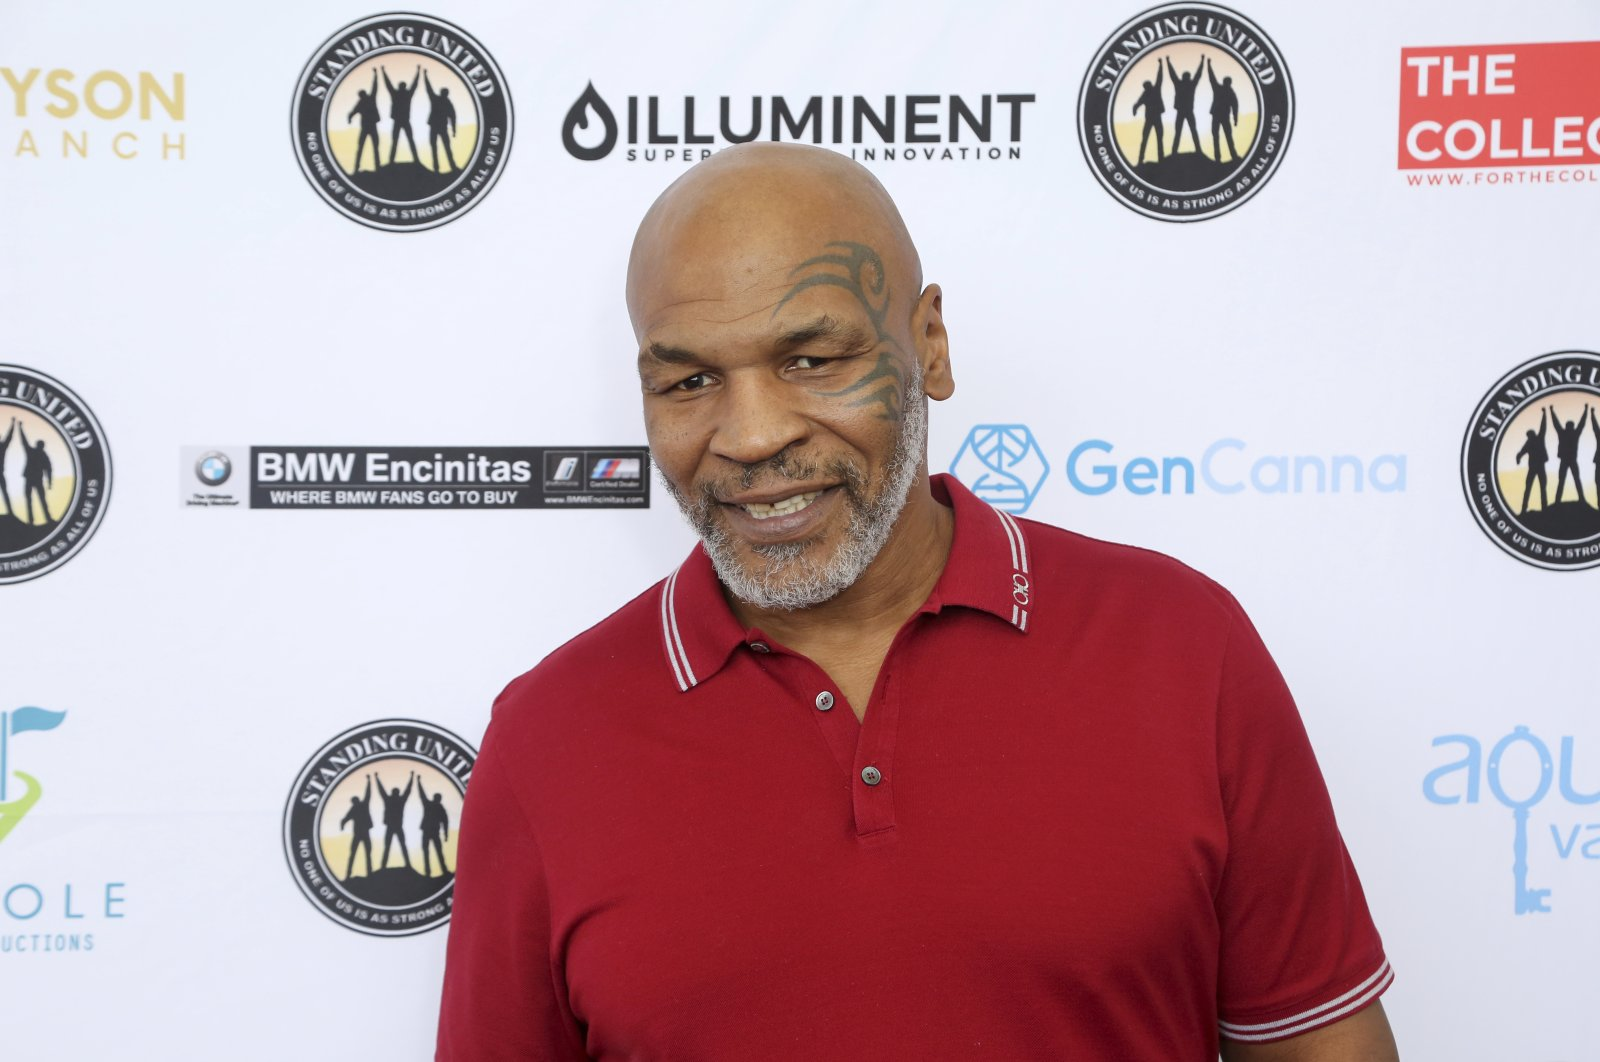 Mike Tyson attends an event in Dana Point, California, U.S., Aug. 3, 2019. (AP Photo)